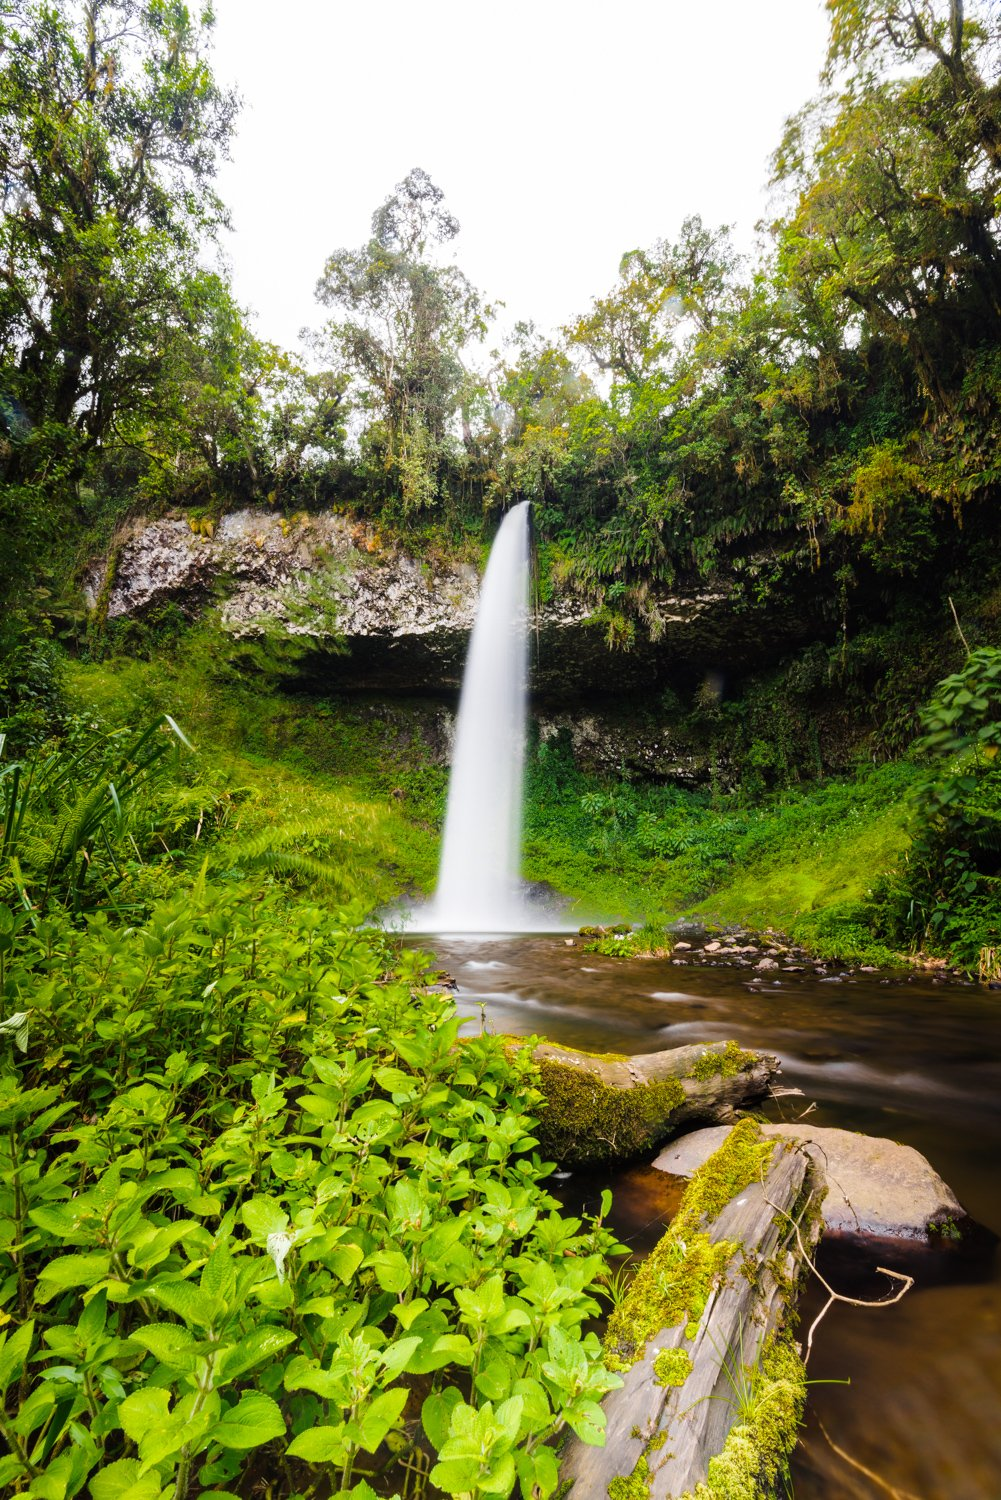 Big waterfall and green vegetation in Mount Kenya